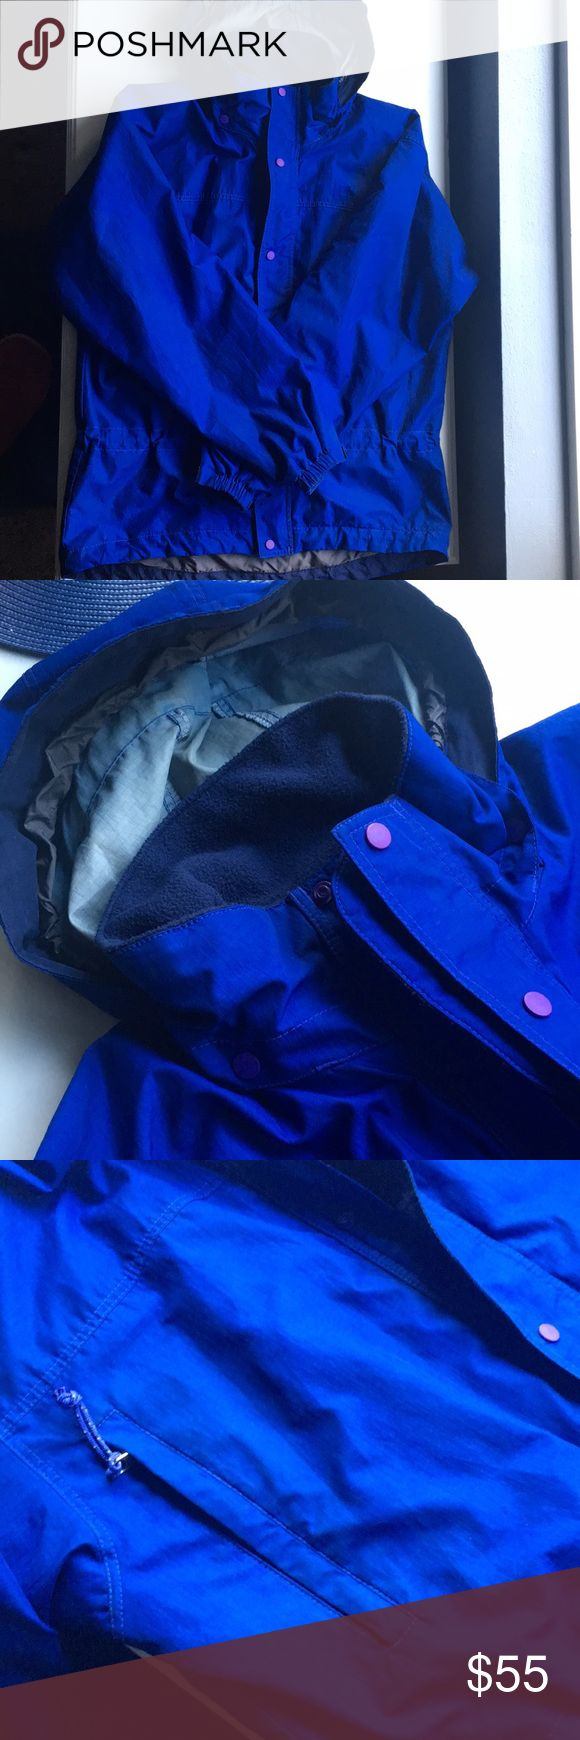 Patagonia rain jacket Older style in great used condition! Bright cobalt blue with purple snap buttons. A waist that can be cinched in from the inside. A hood that can be folded into the collar. Zipper pockets. Velcro at sleeves to make them tighter. Great jacket for those rainy days! No size tag, but definitely a medium! Patagonia Jackets & Coats